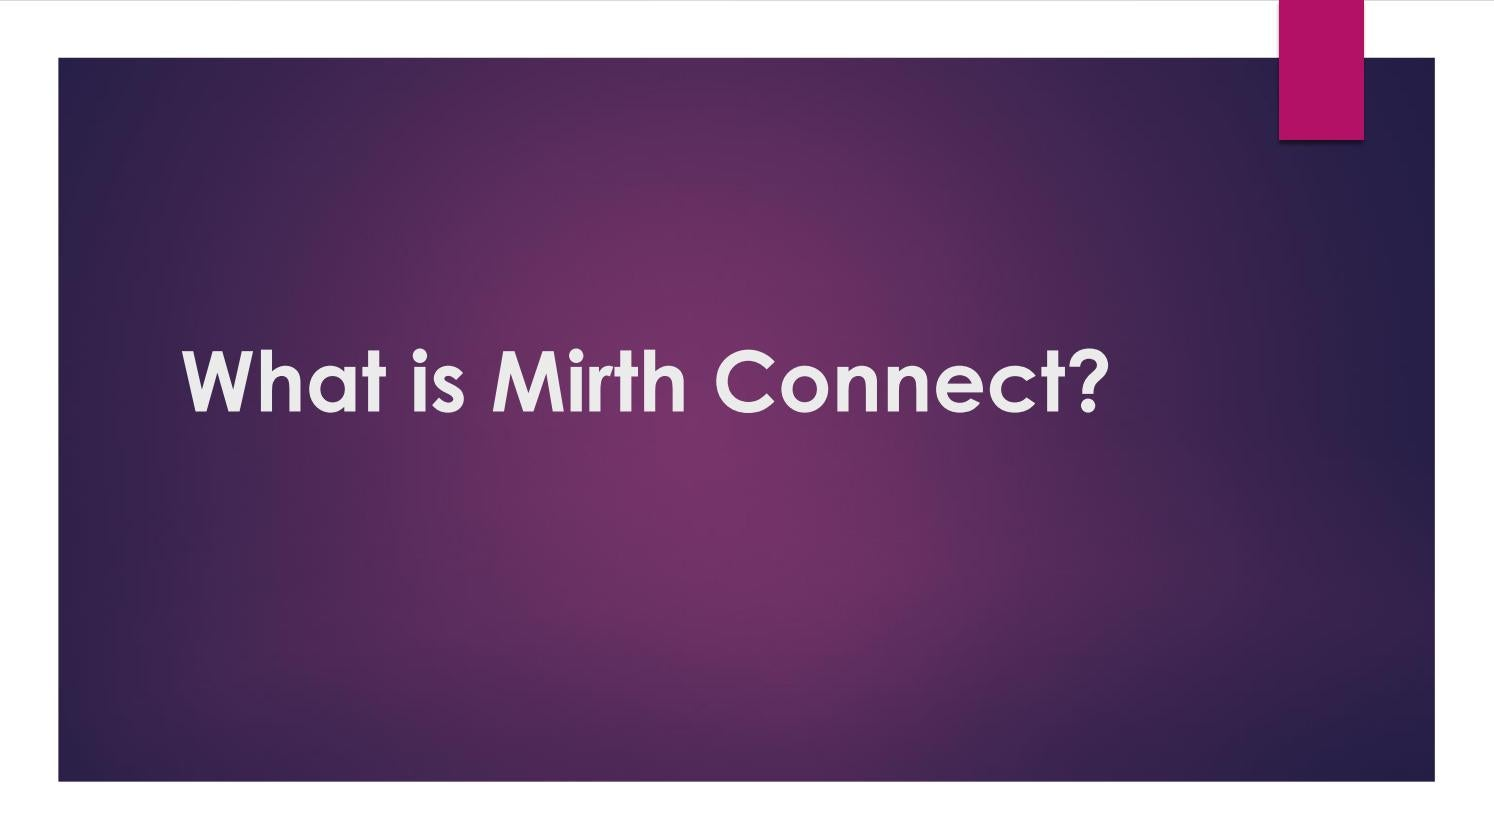 What is Mirth Connect? by chetuinc - issuu